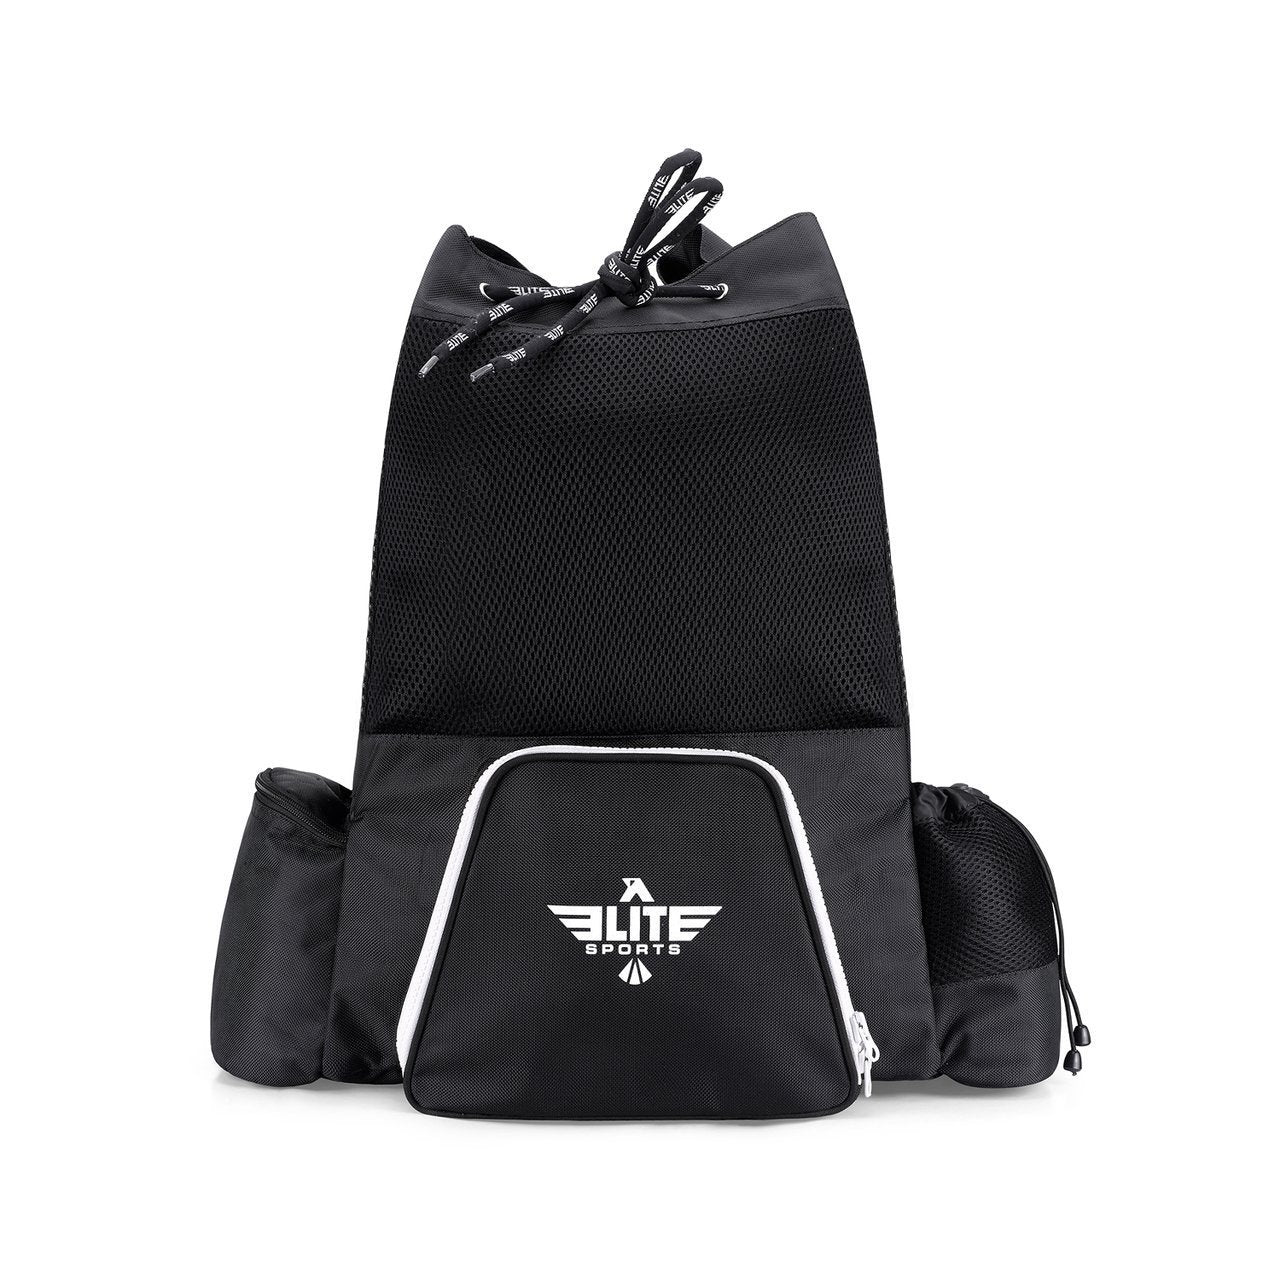 Elite Sports Mesh Black Medium Training Gear Gym Bag & Backpack